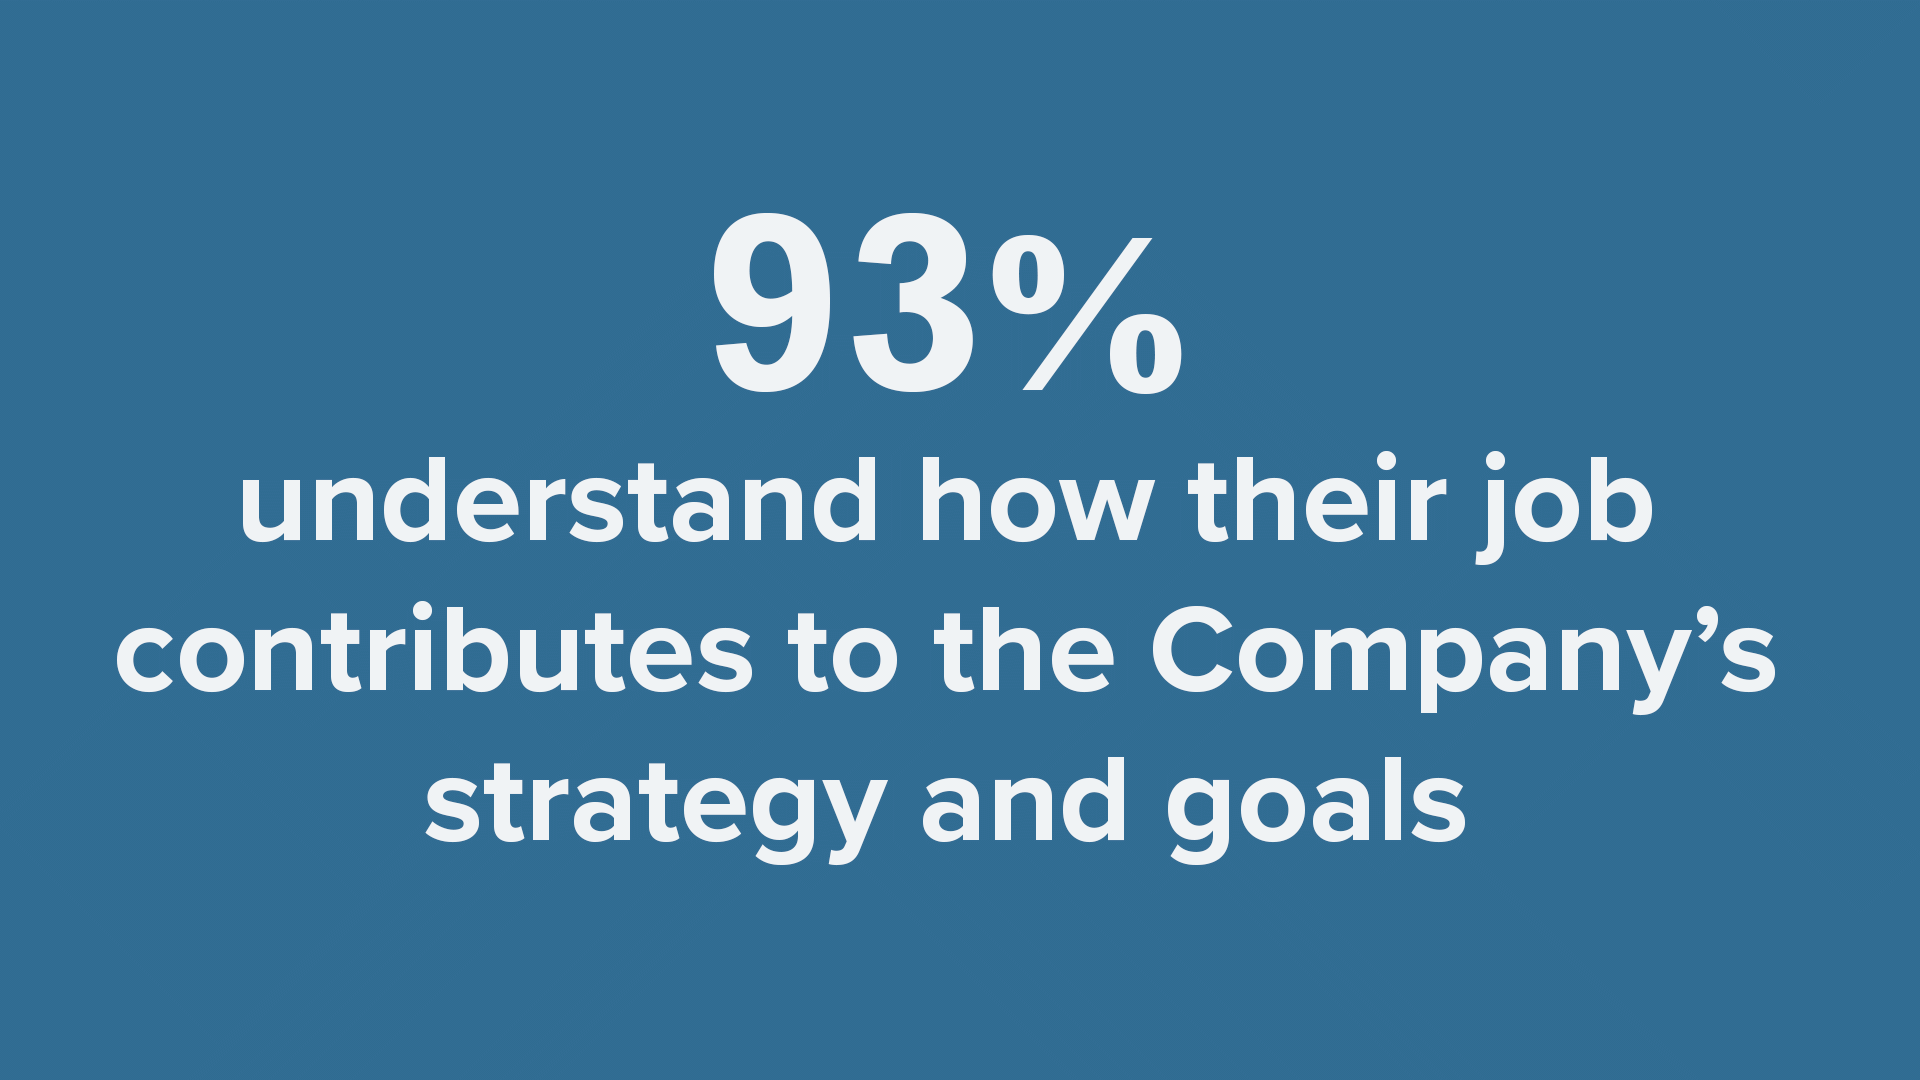 93% say their job positively contributes to the company's strategy and mission.